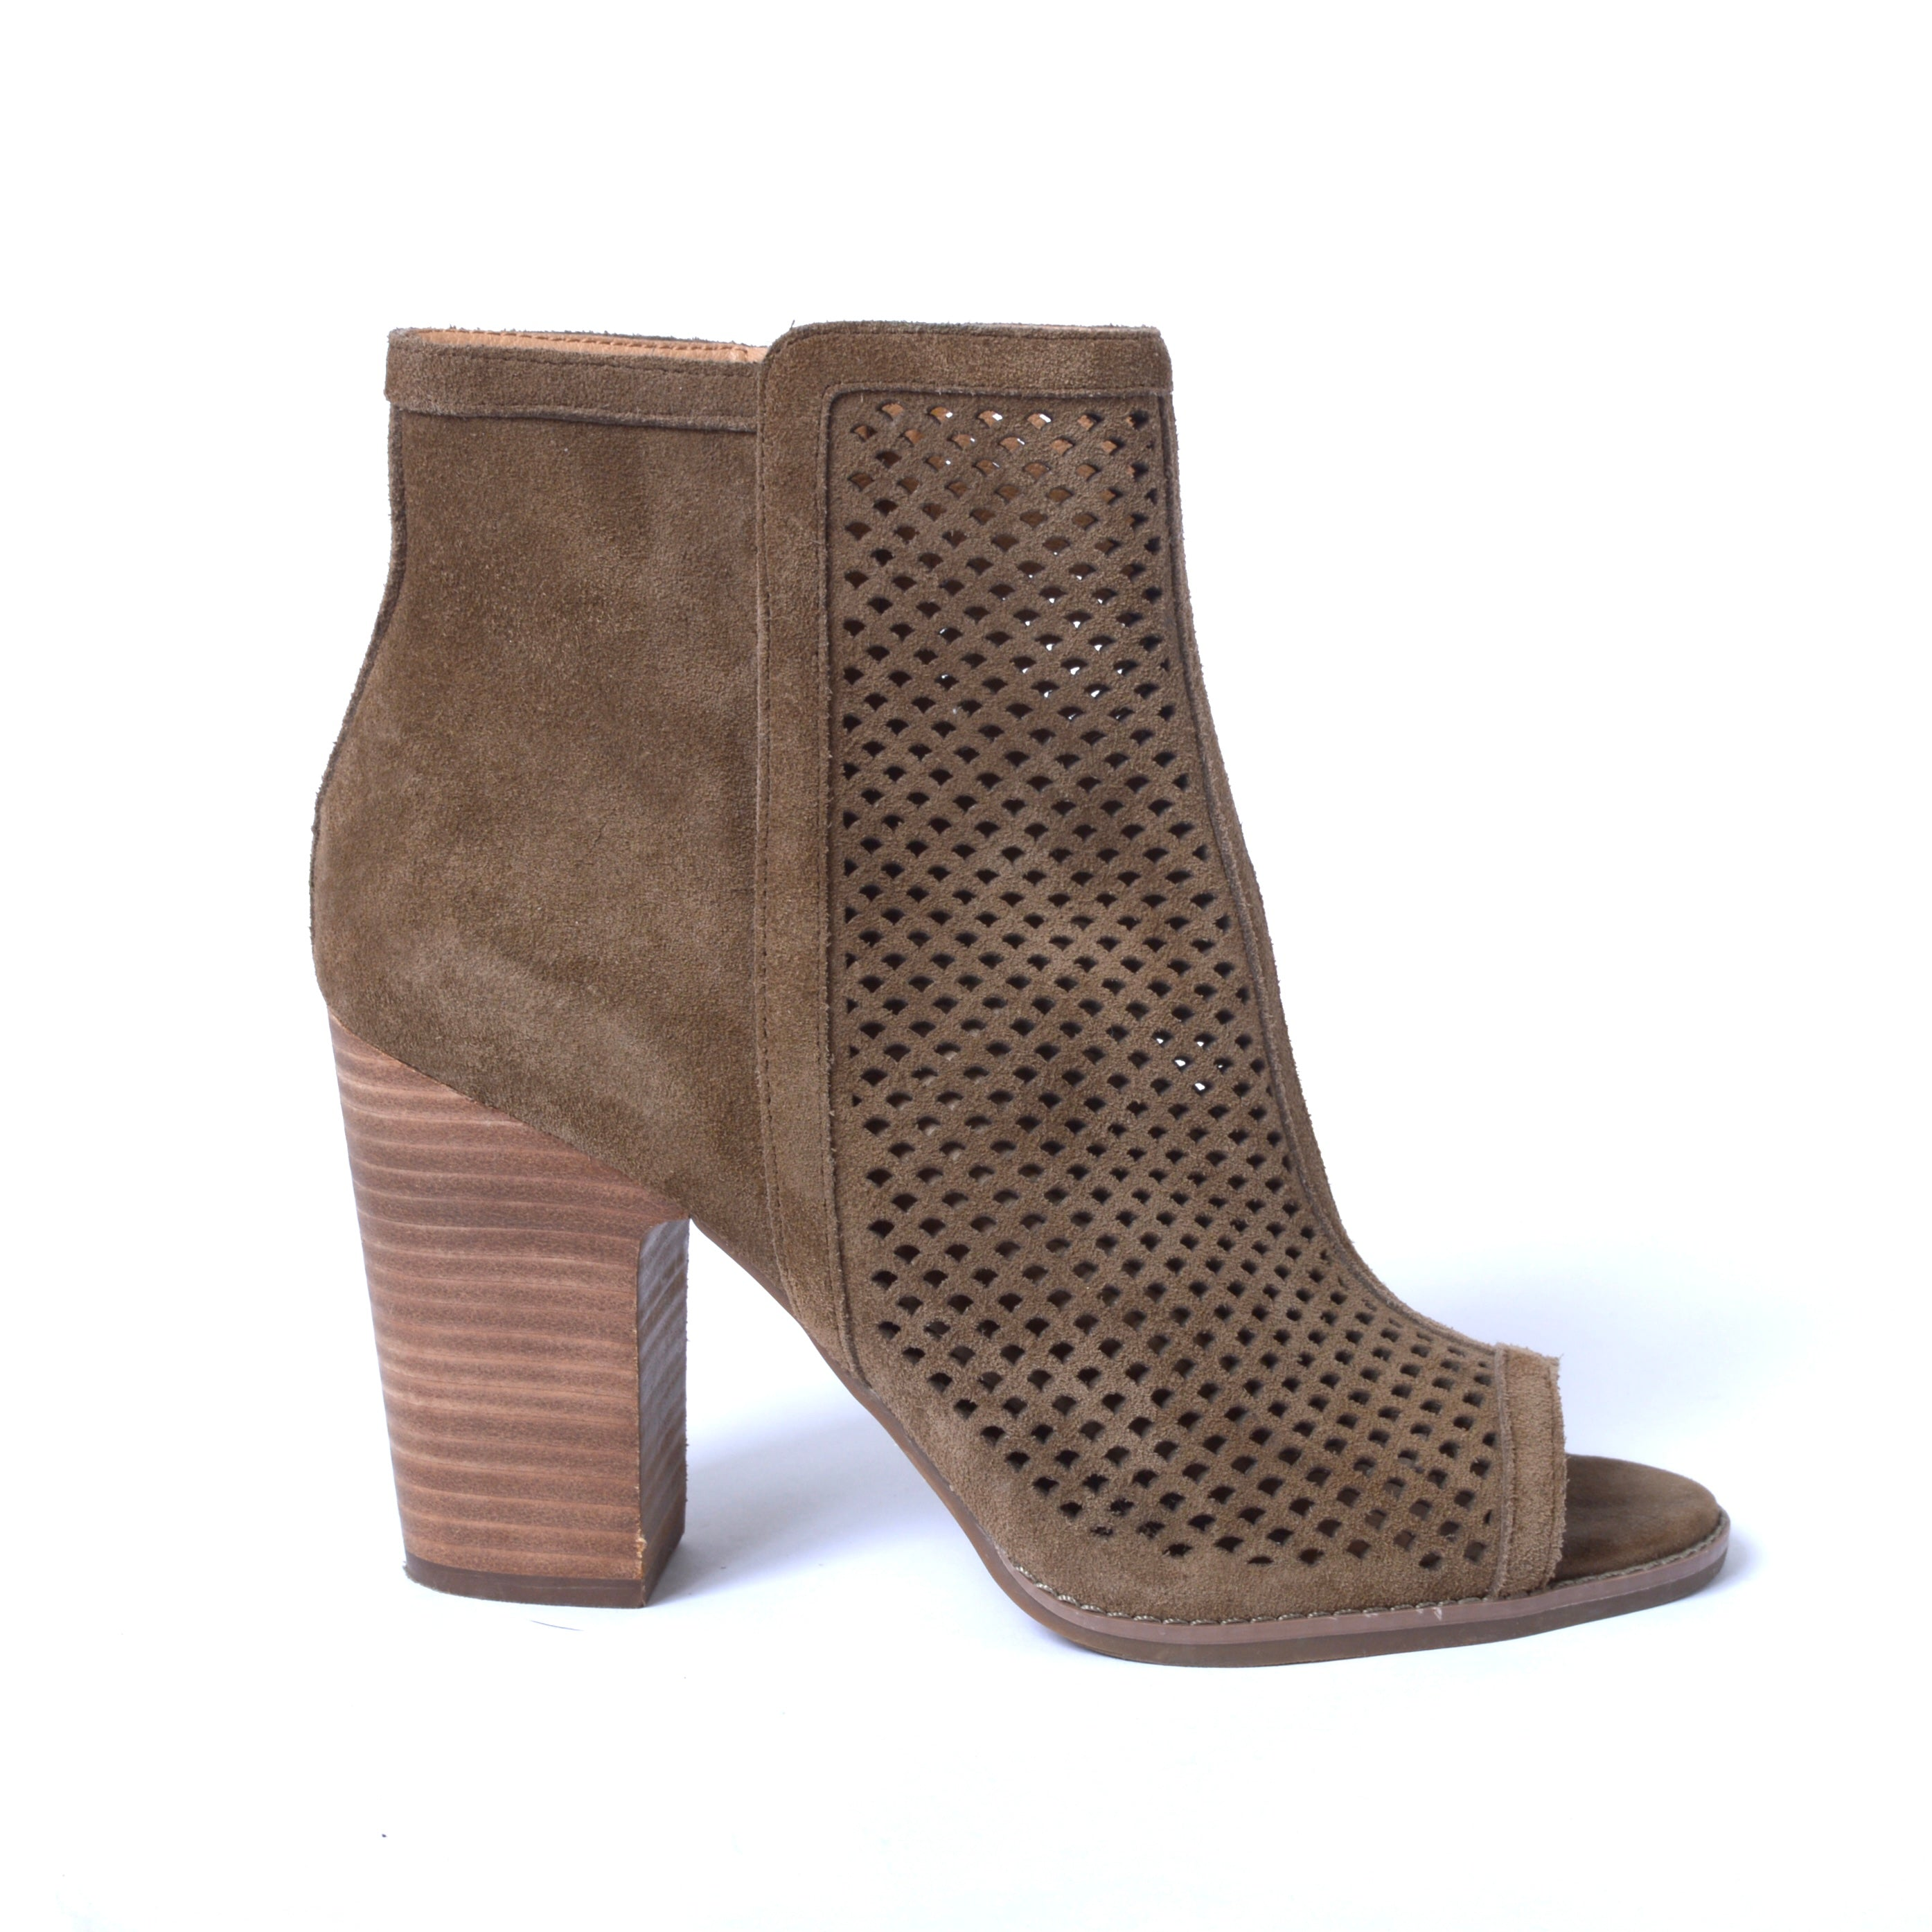 Primary Photo - BRAND: LUCKY BRAND <BR>STYLE: BOOTS ANKLE <BR>COLOR: TAUPE <BR>SIZE: 9 <BR>SKU: 293-29311-33617